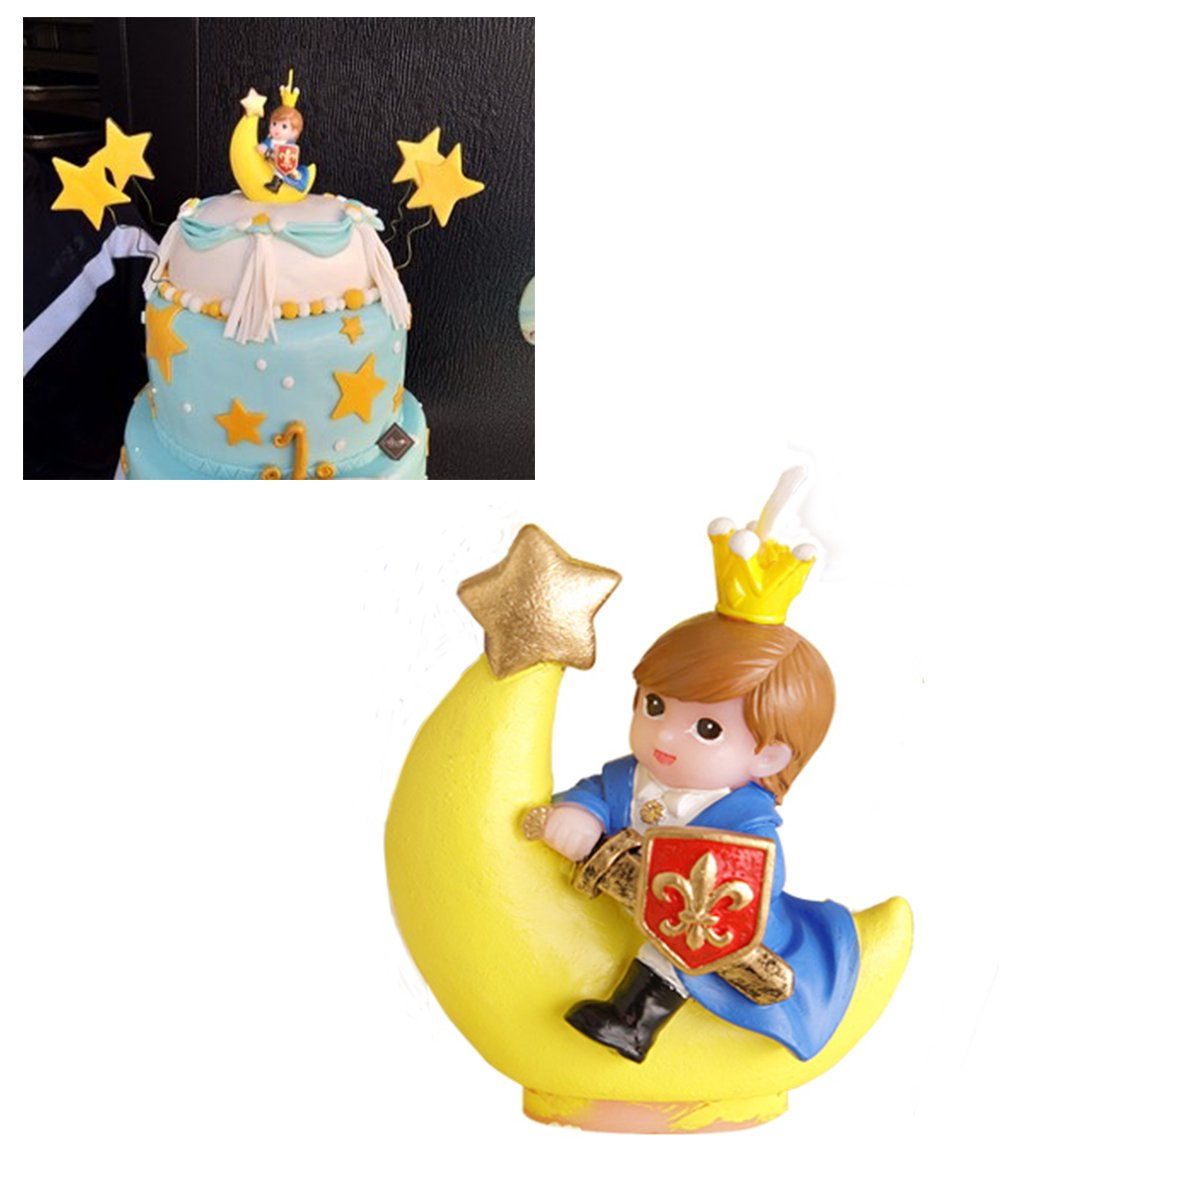 Beyonder Children's Birthday Candles with Greeting Card,Handmade Adorable Prince Smokeless Baby Shower Baby Birthday Cake Topper Candle, Baby Shower Party Favors Decorations (1, Prince)